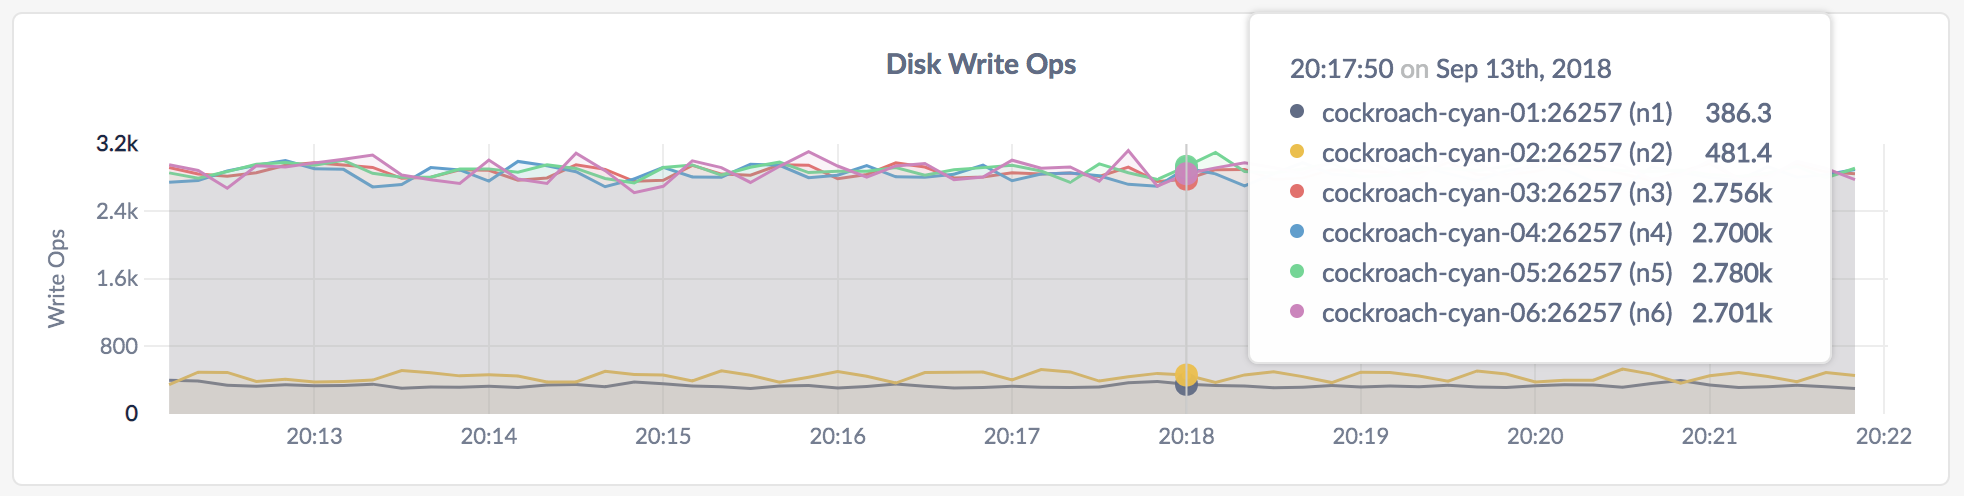 DB Console Disk Write Ops graph